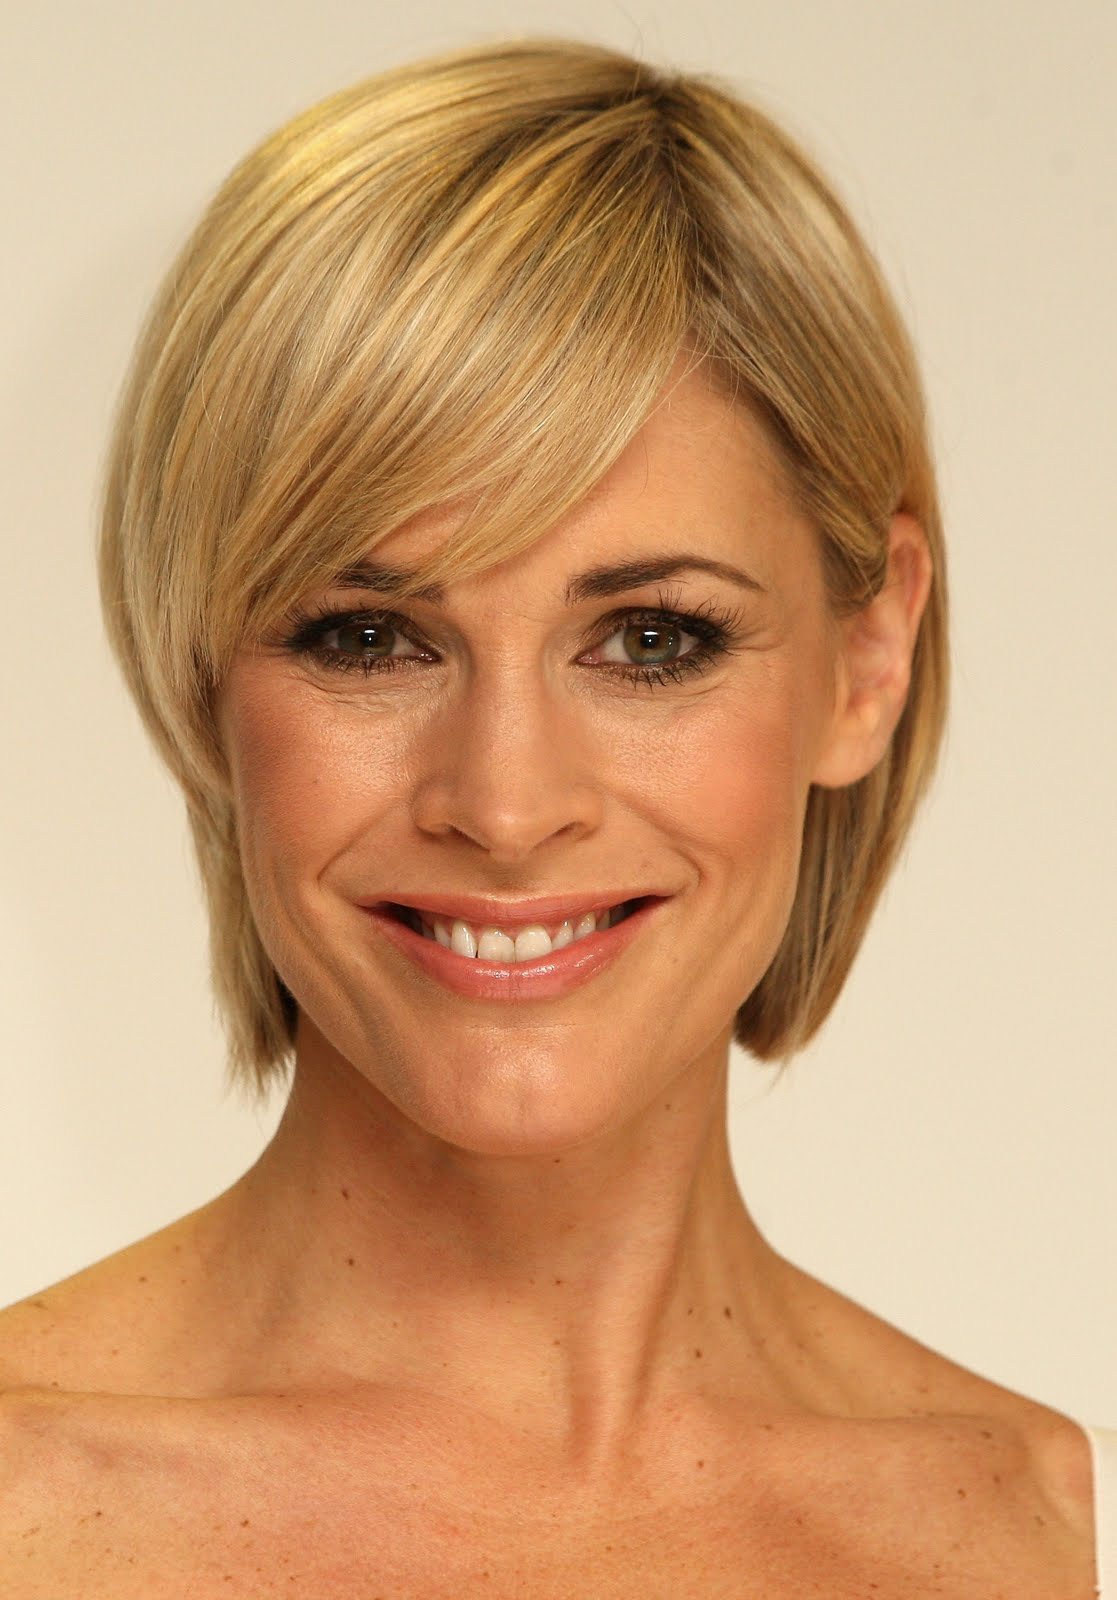 short-hairstyles-for-oval-faces-2011-.jpg